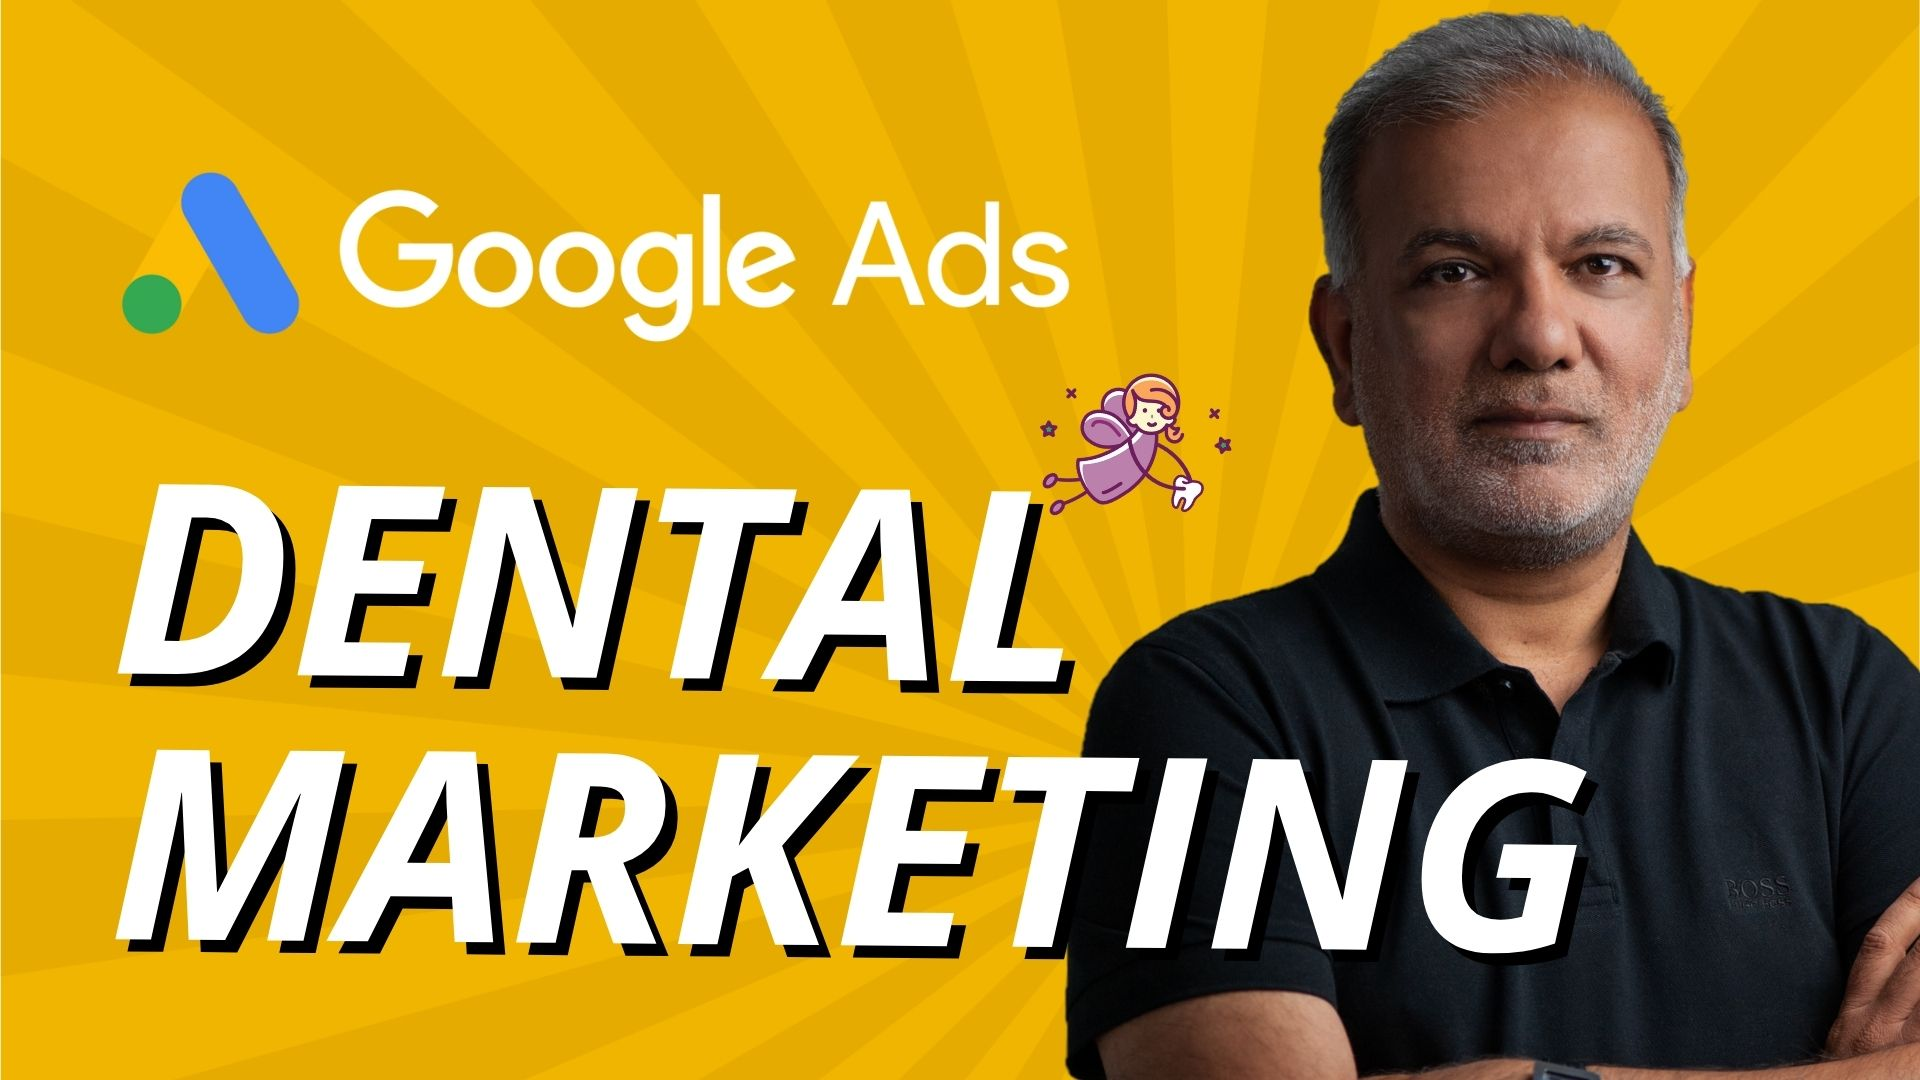 Dental Marketing Tips To Attract New Patients Using Google Ads